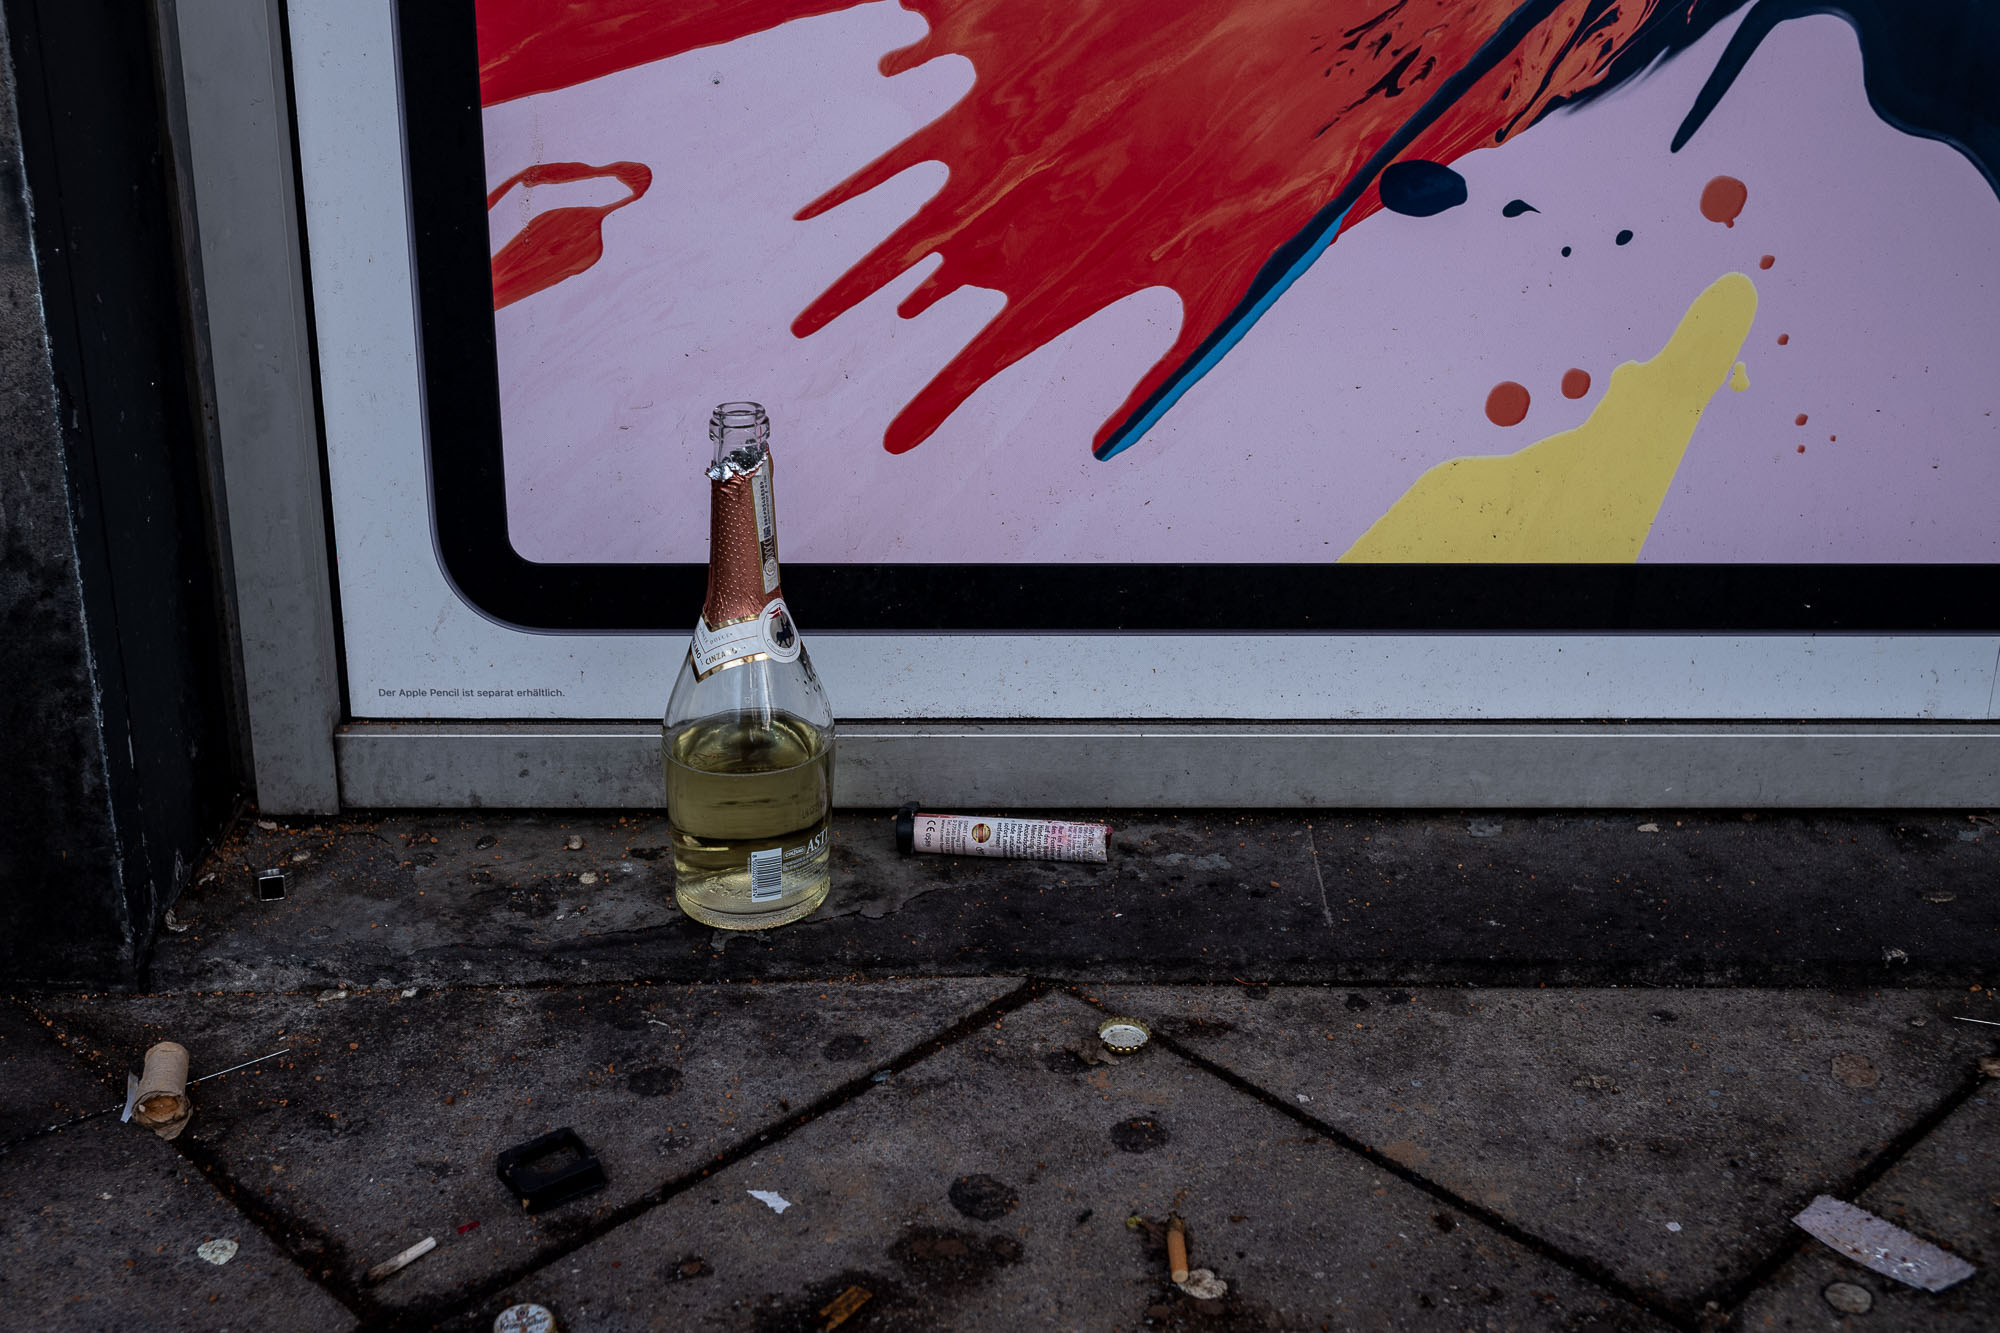 Half empty bottole of sparkling wine next to an colorful apple ad.